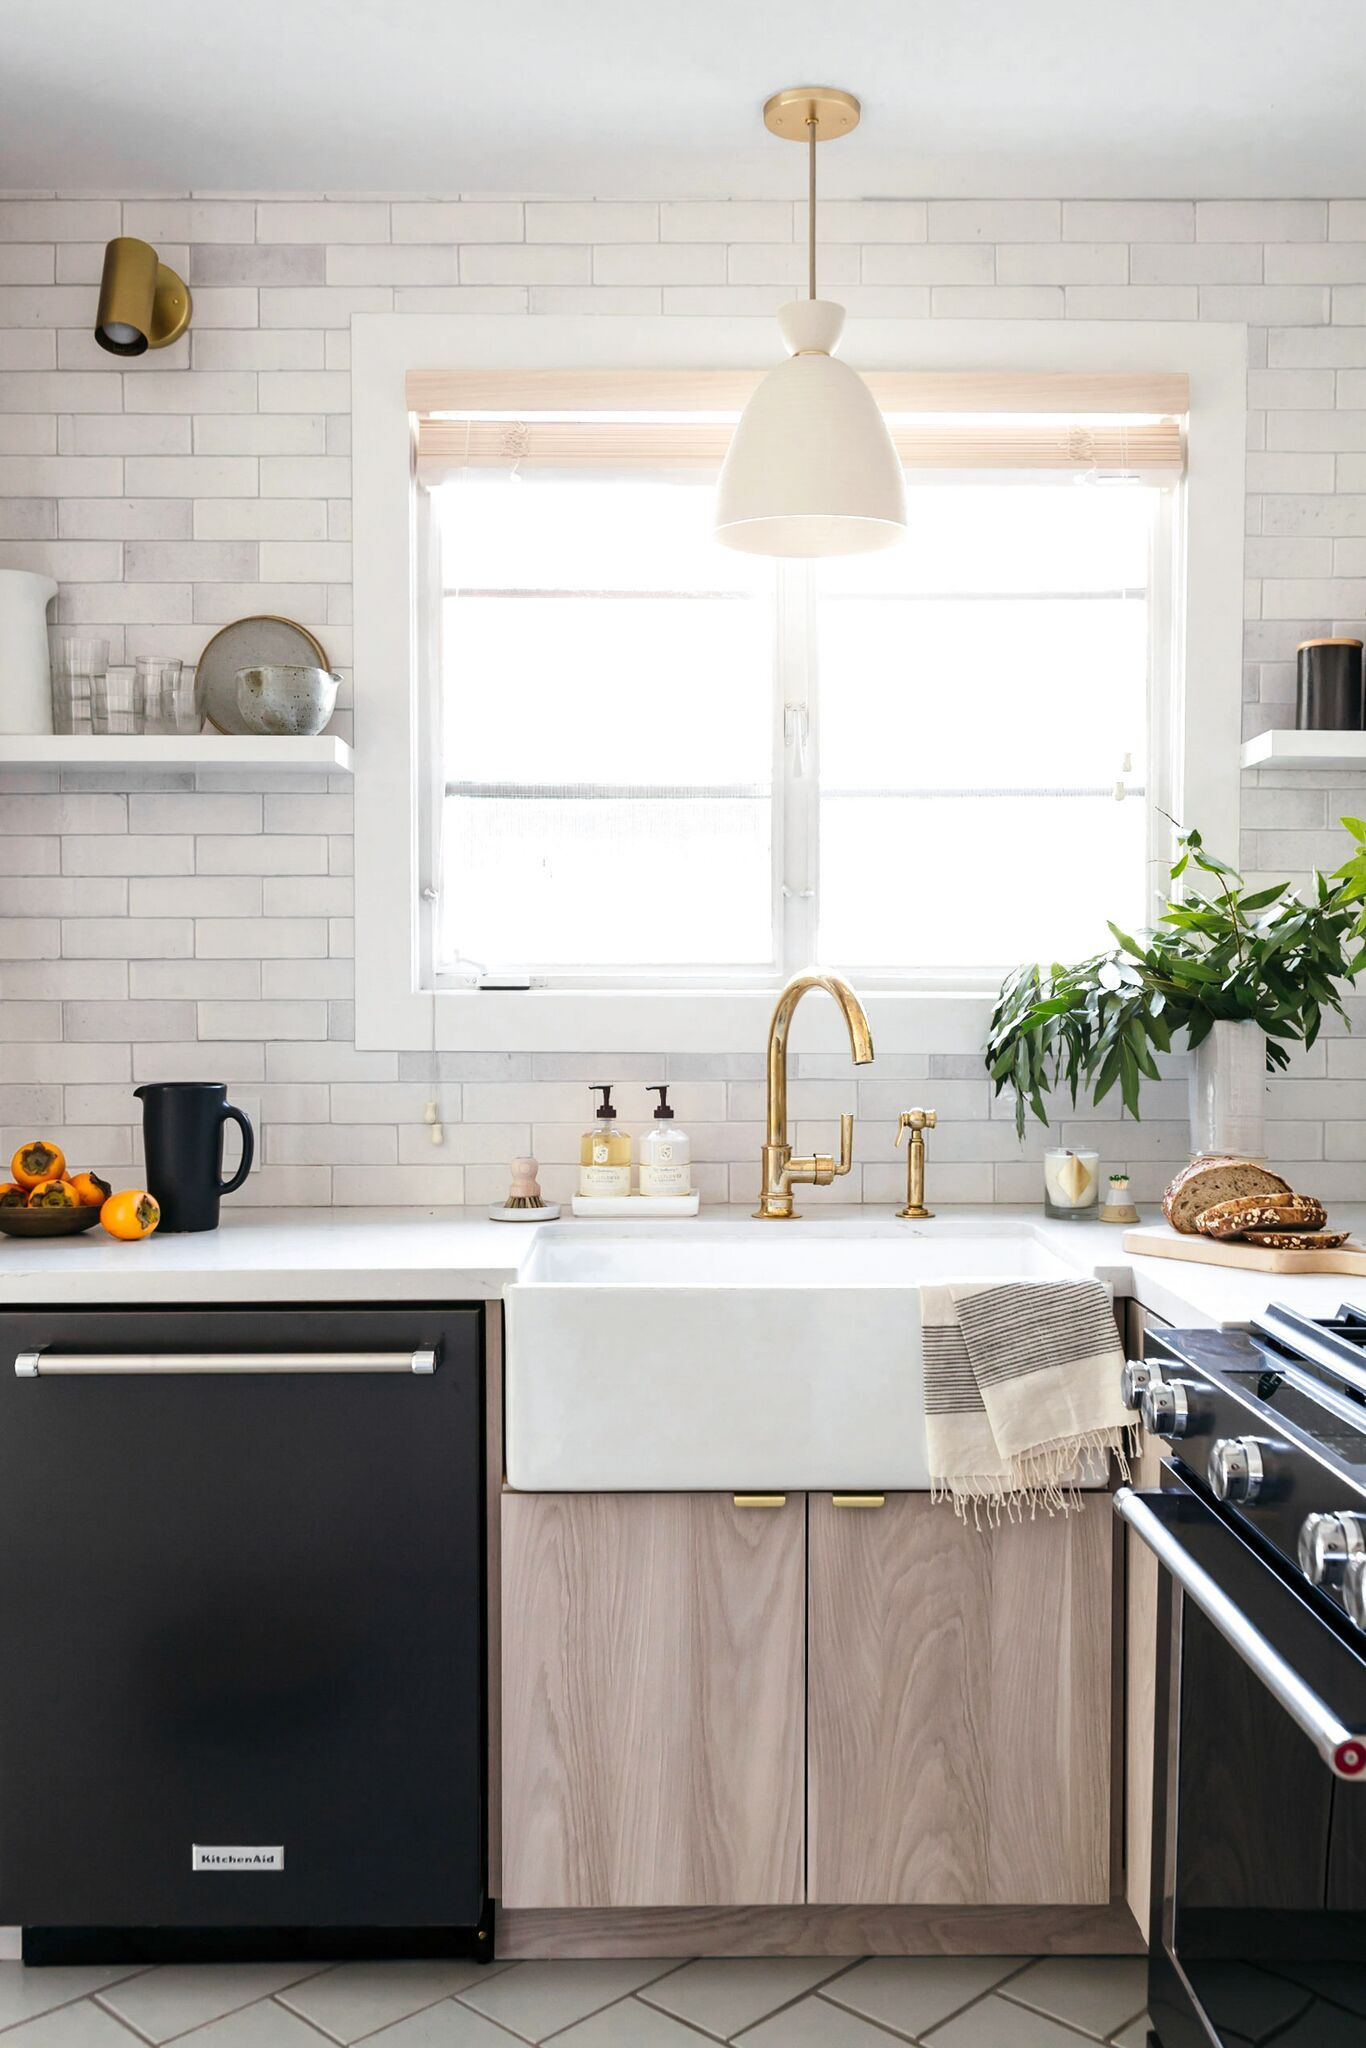 Anne sage kitchen reveal in kitchens are my favorite